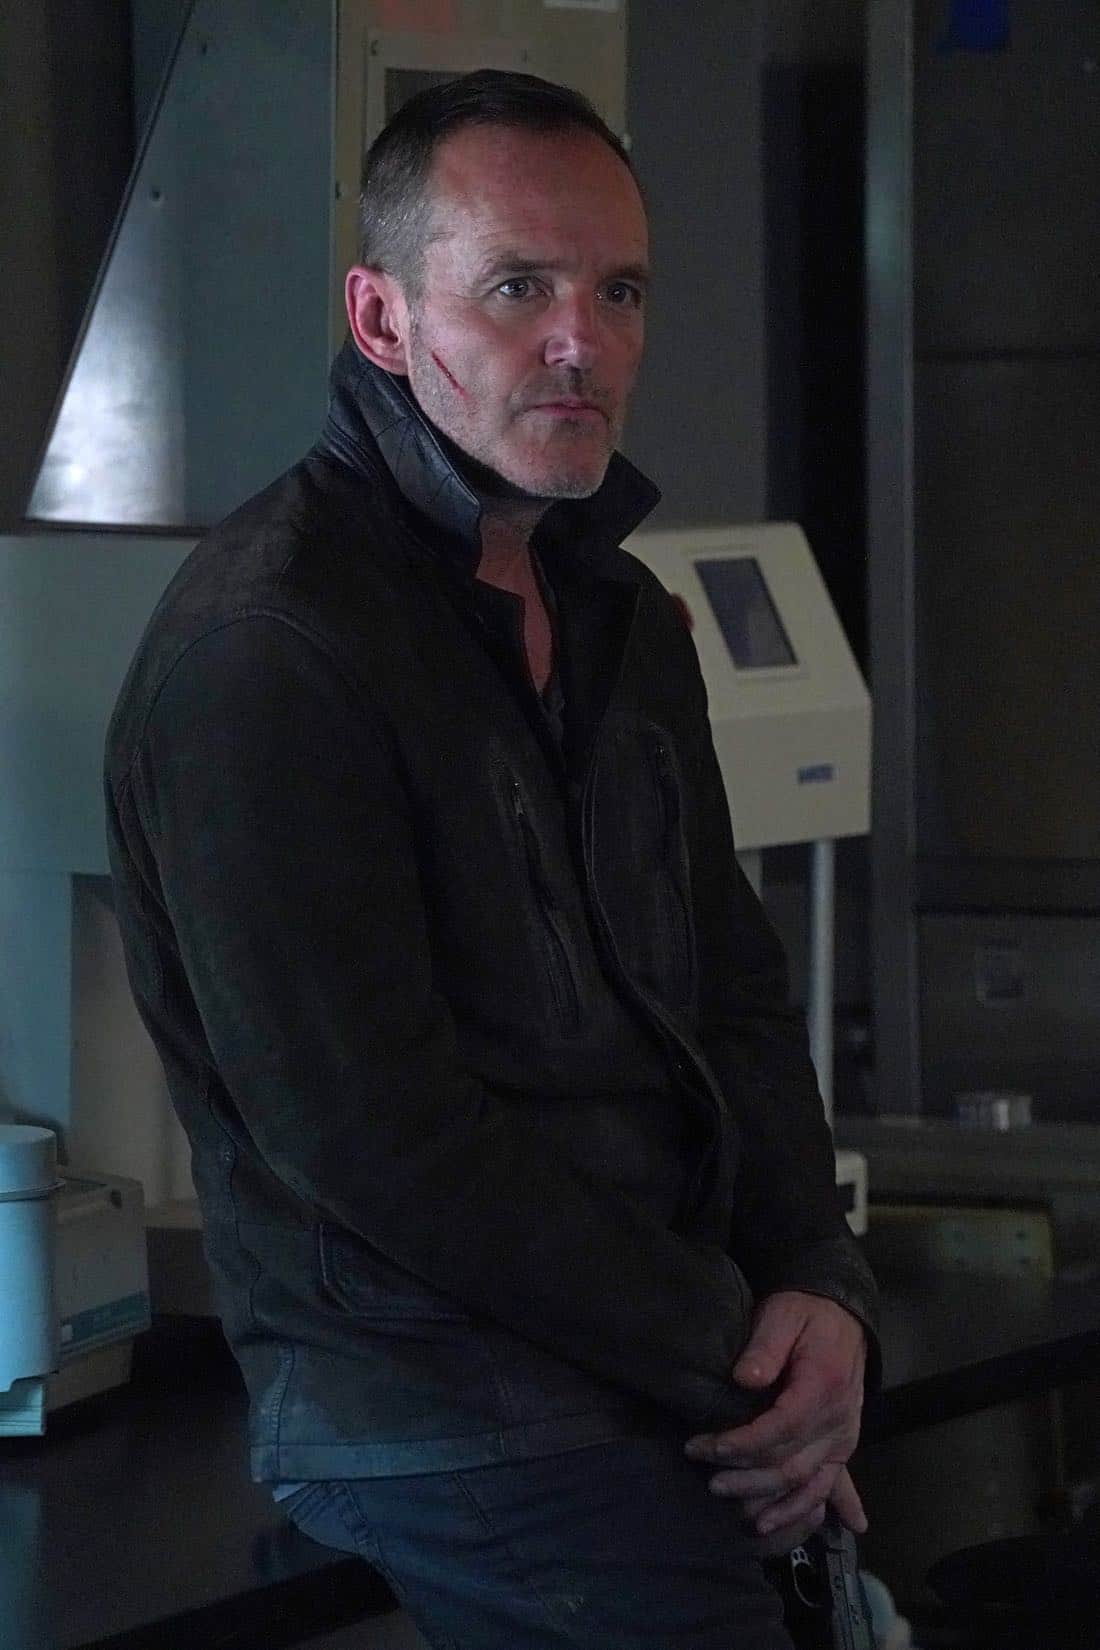 """MARVEL'S AGENTS OF S.H.I.E.L.D. - """"All the Comforts of Home"""" - Coulson and team set out to rewrite the course of humanity's fate, but they're unaware that their efforts will dramatically change one S.H.I.E.L.D agent's life, on """"Marvel's Agents of S.H.I.E.L.D.,"""" FRIDAY, MARCH 2 (9:01-10:01 p.m. EST), on The ABC Television Network. (ABC/Byron Cohen) CLARK GREGG"""